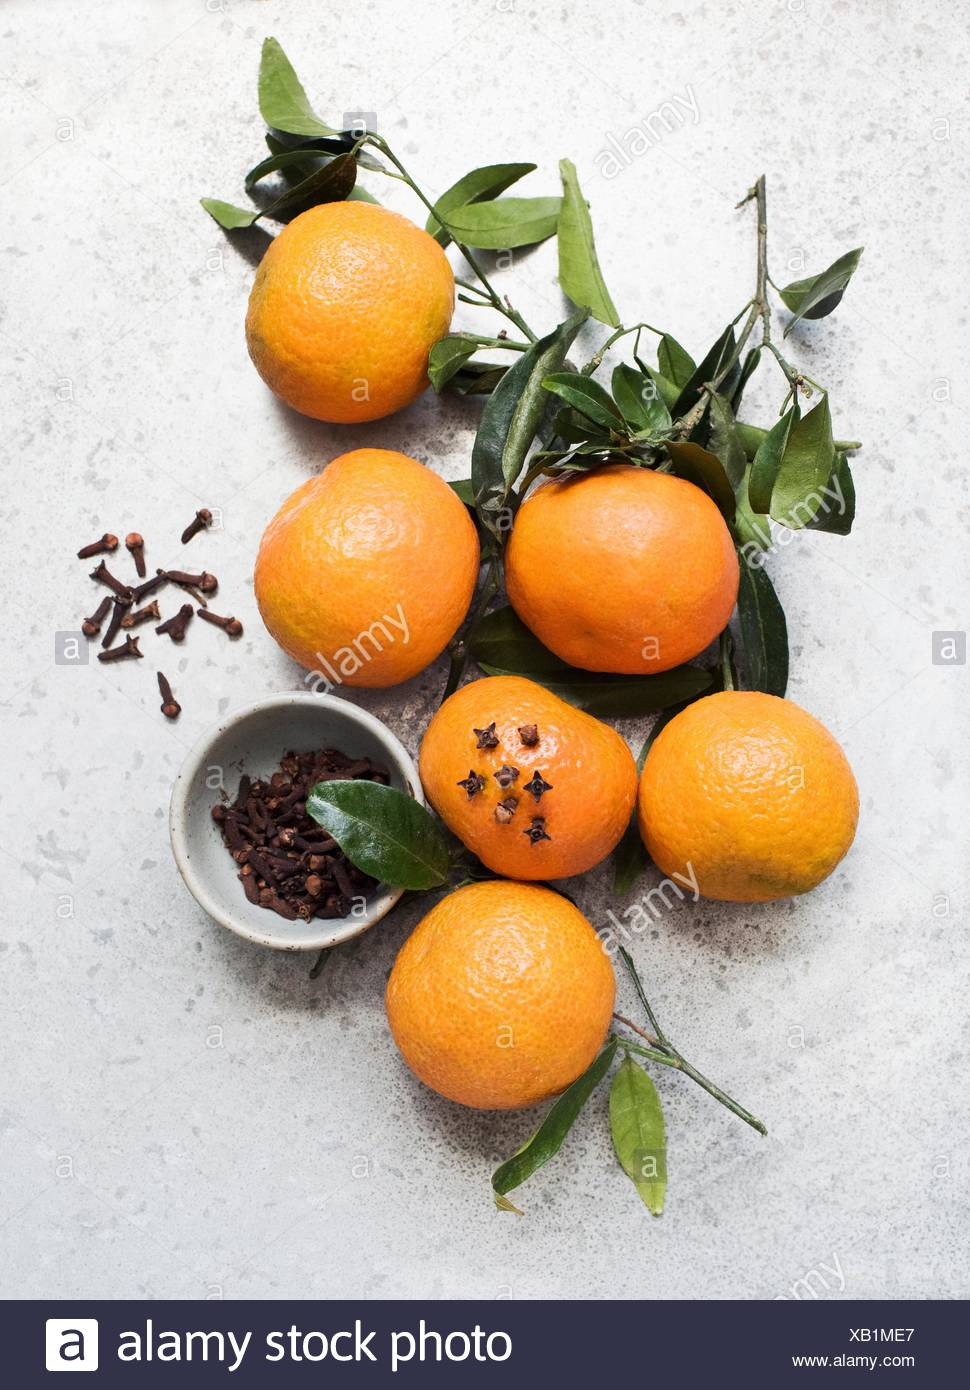 Overhead view of oranges decorated with cloves - Stock Image